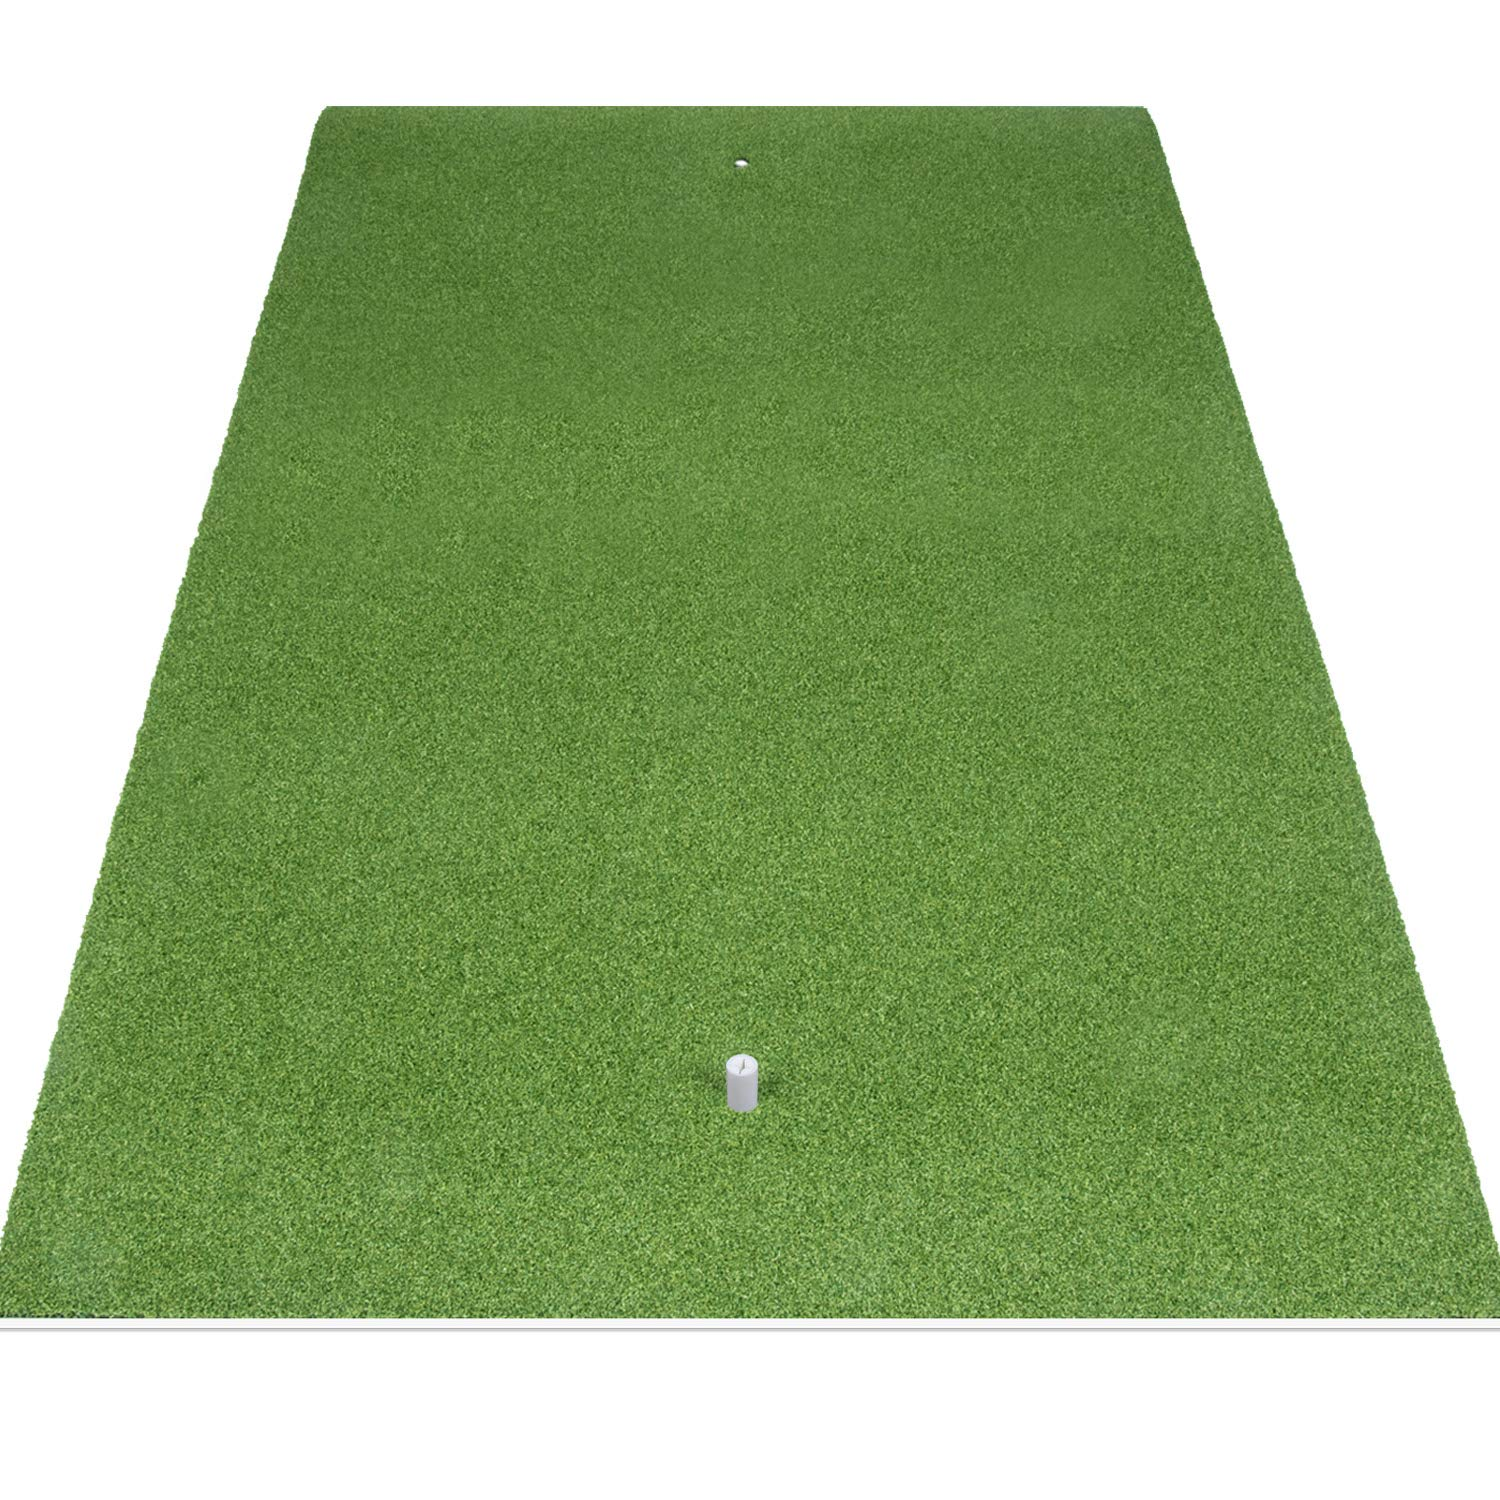 SkyLife Golf Practice Mat 3'x5' Driving Chipping Putting Hitting Turf Training Equipment for Backyard Home Garage Outdoor (3' x 5') by SkyLife